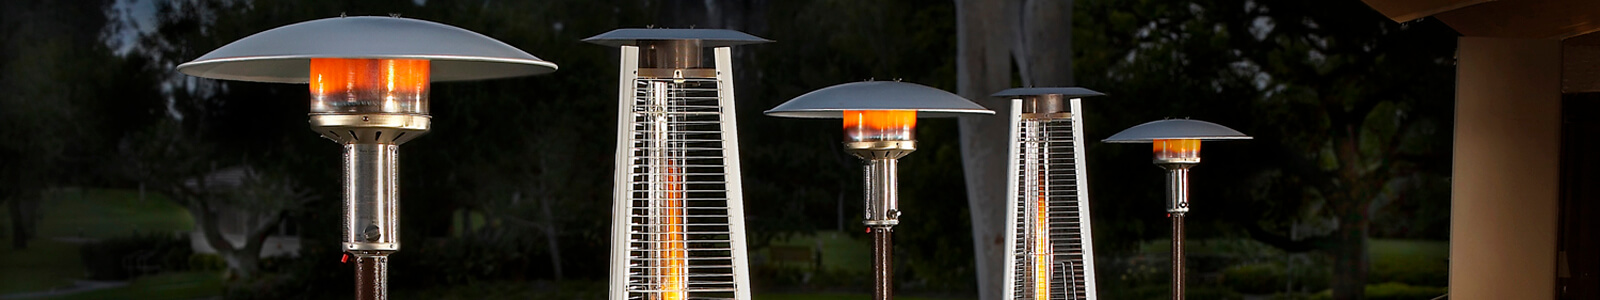 Patio Comfort Heaters & Outdoor Heaters Banner